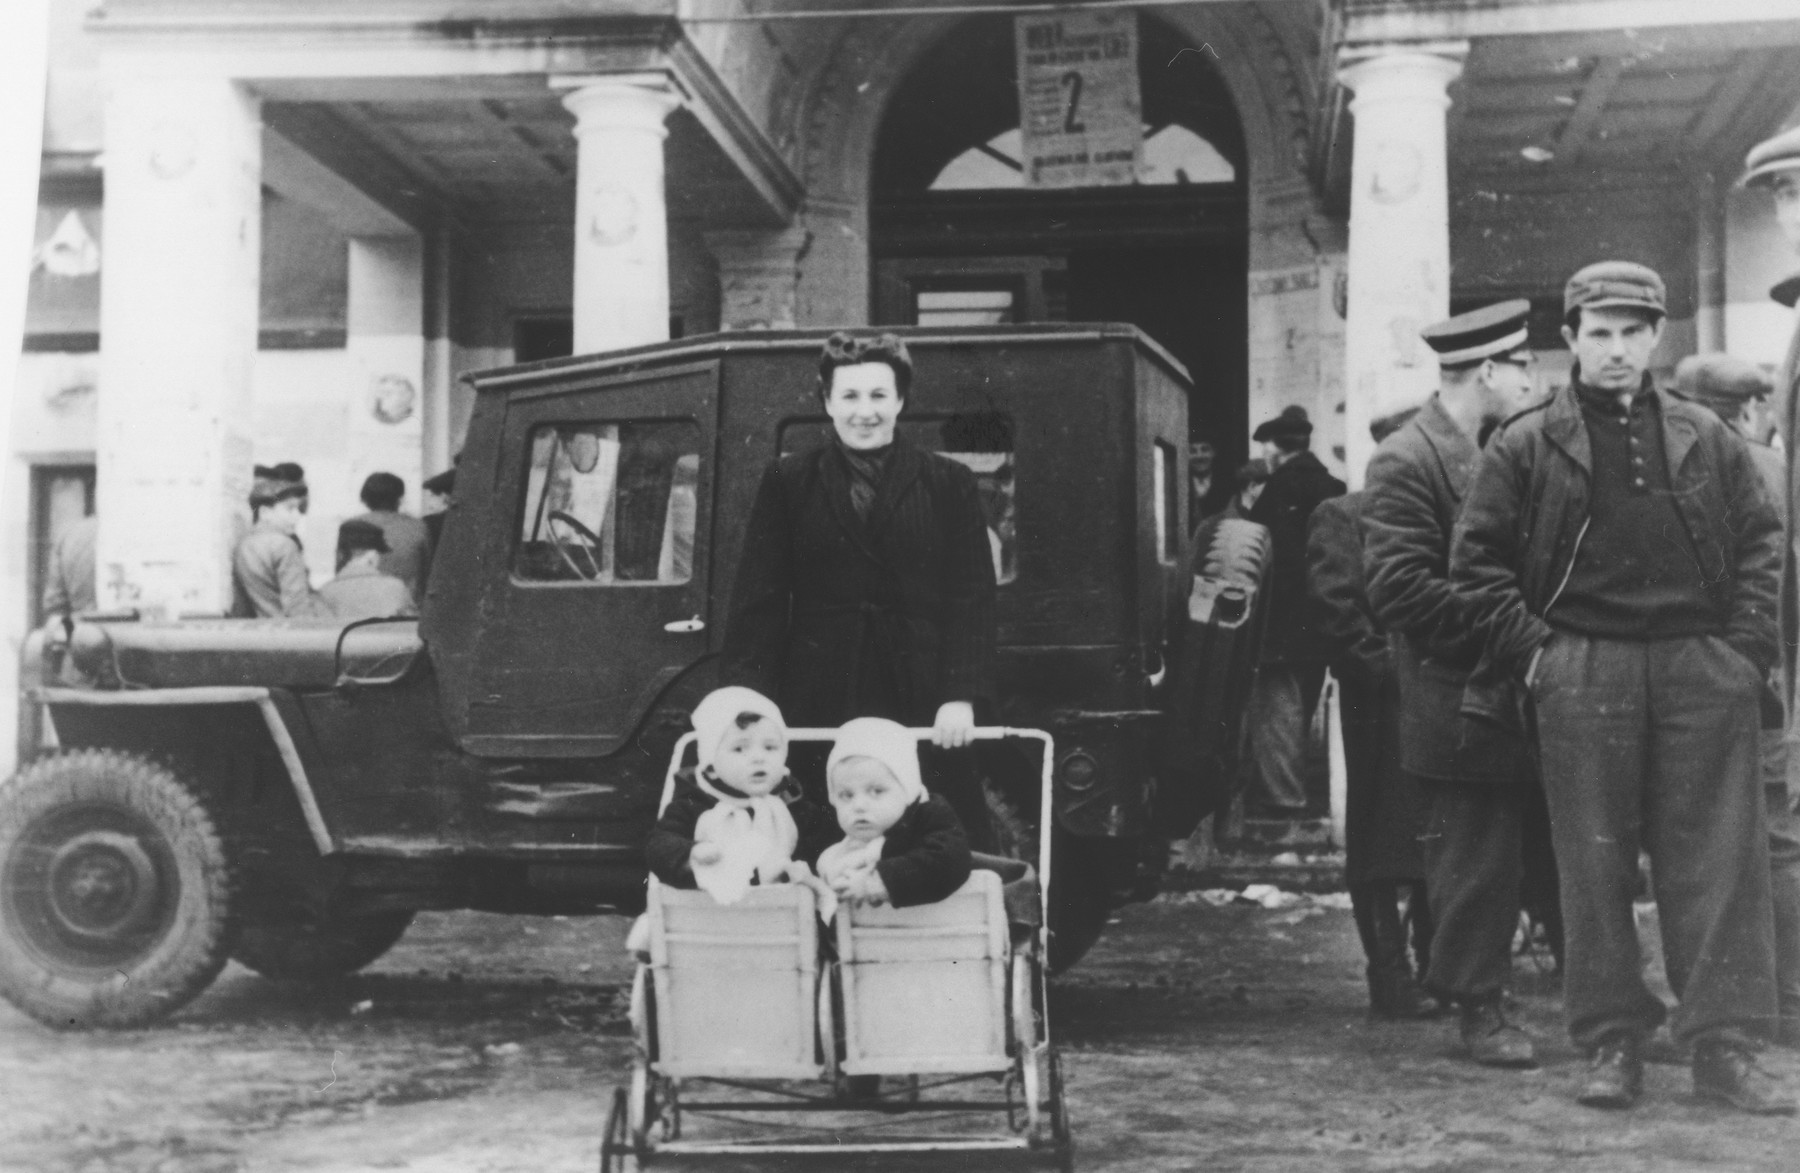 A Jewish mother poses with her twin toddlers outside a building in the Gold Cup displaced persons camp.  These children were the first set of twins born in the camp.